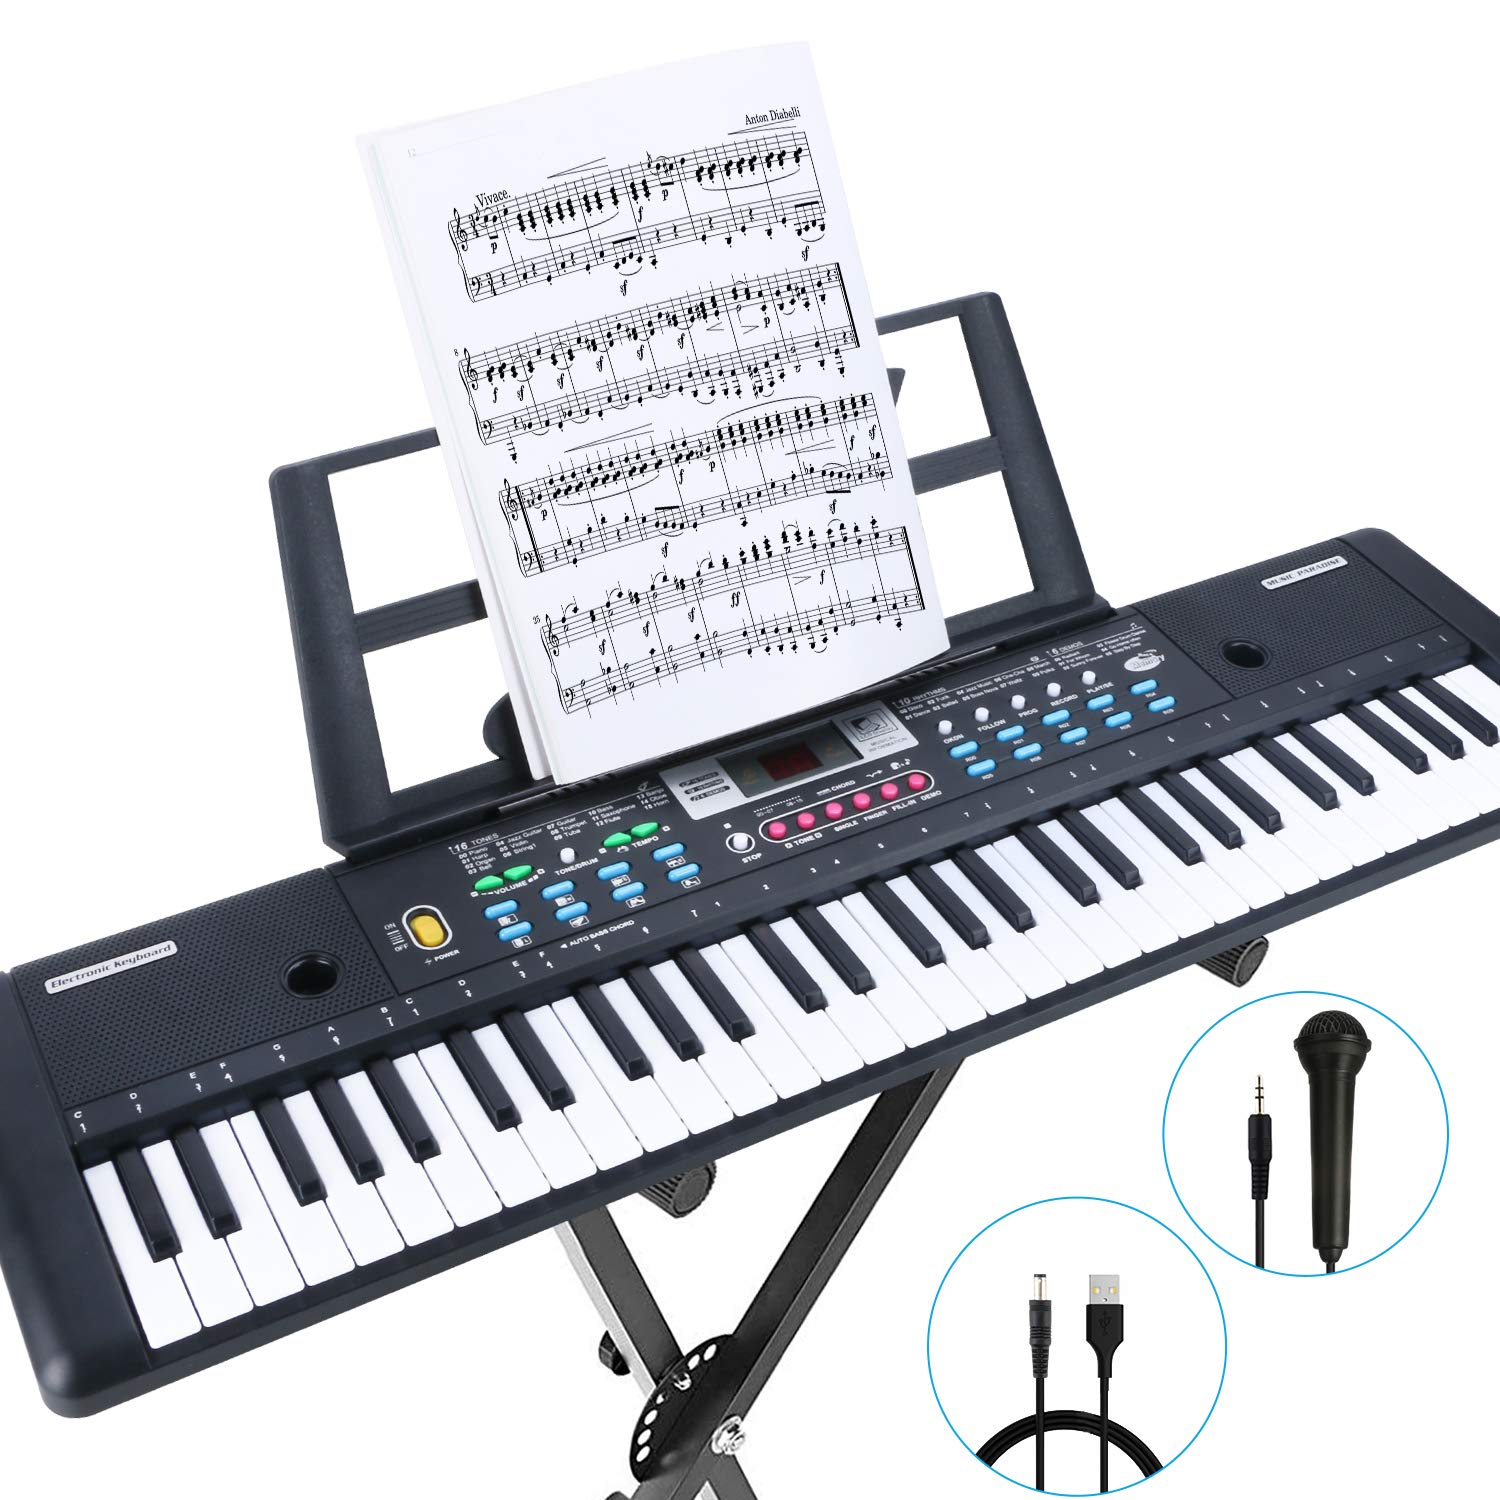 RenFox 61-Key Keyboard Piano with Microphone & Music Stand Portable Electronic Kids Piano Keyboard for Beginners 22.9x7.9x2.3 Inch by RenFox